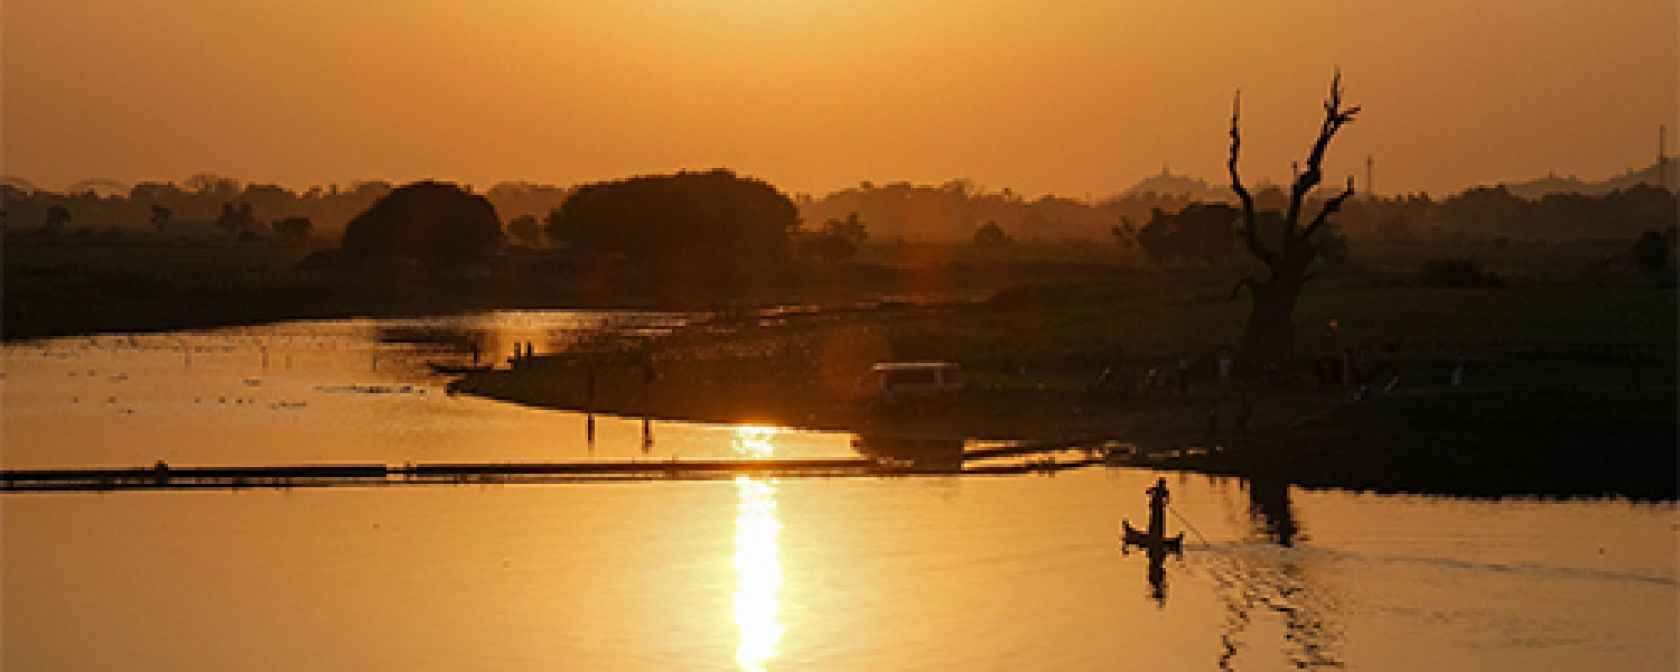 Speak to Our Experts about Your Perfect Irrawaddy River Cruise